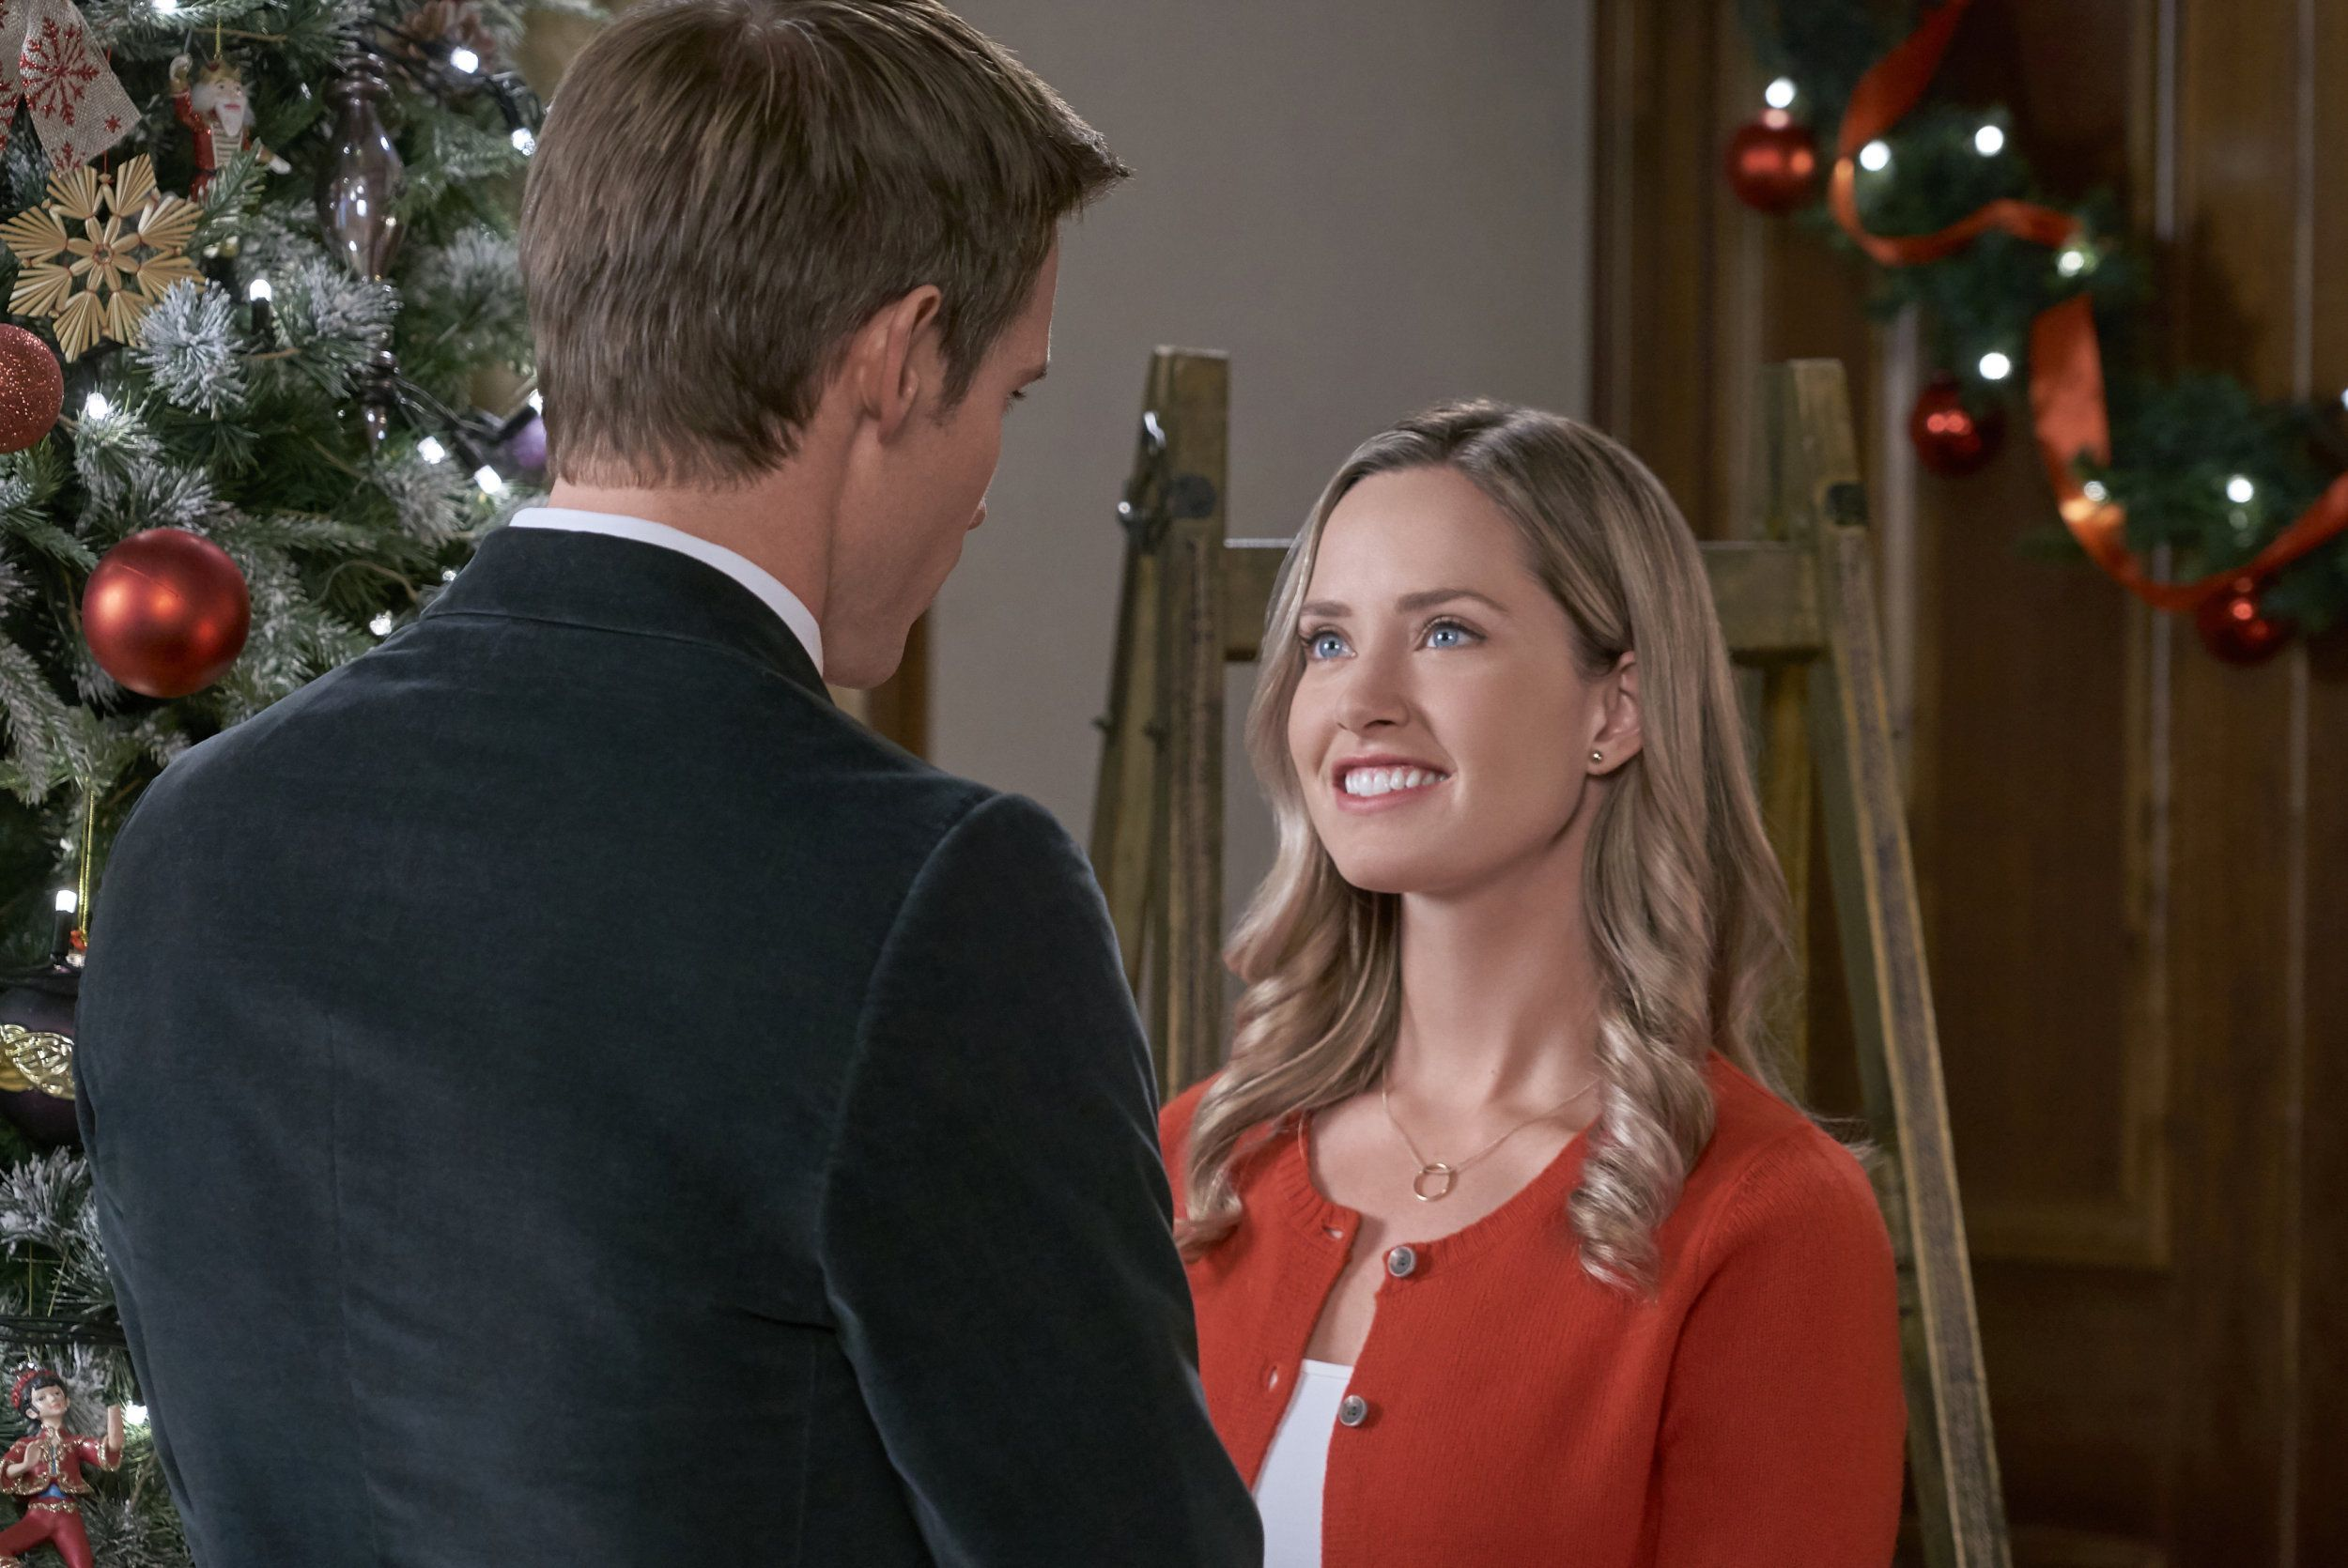 Go Behind The Scenes Of The Hallmark Channel Original Movie Christmas At The Palace Starring Merritt Patte Merritt Patterson Hallmark Christmas Movies Photo